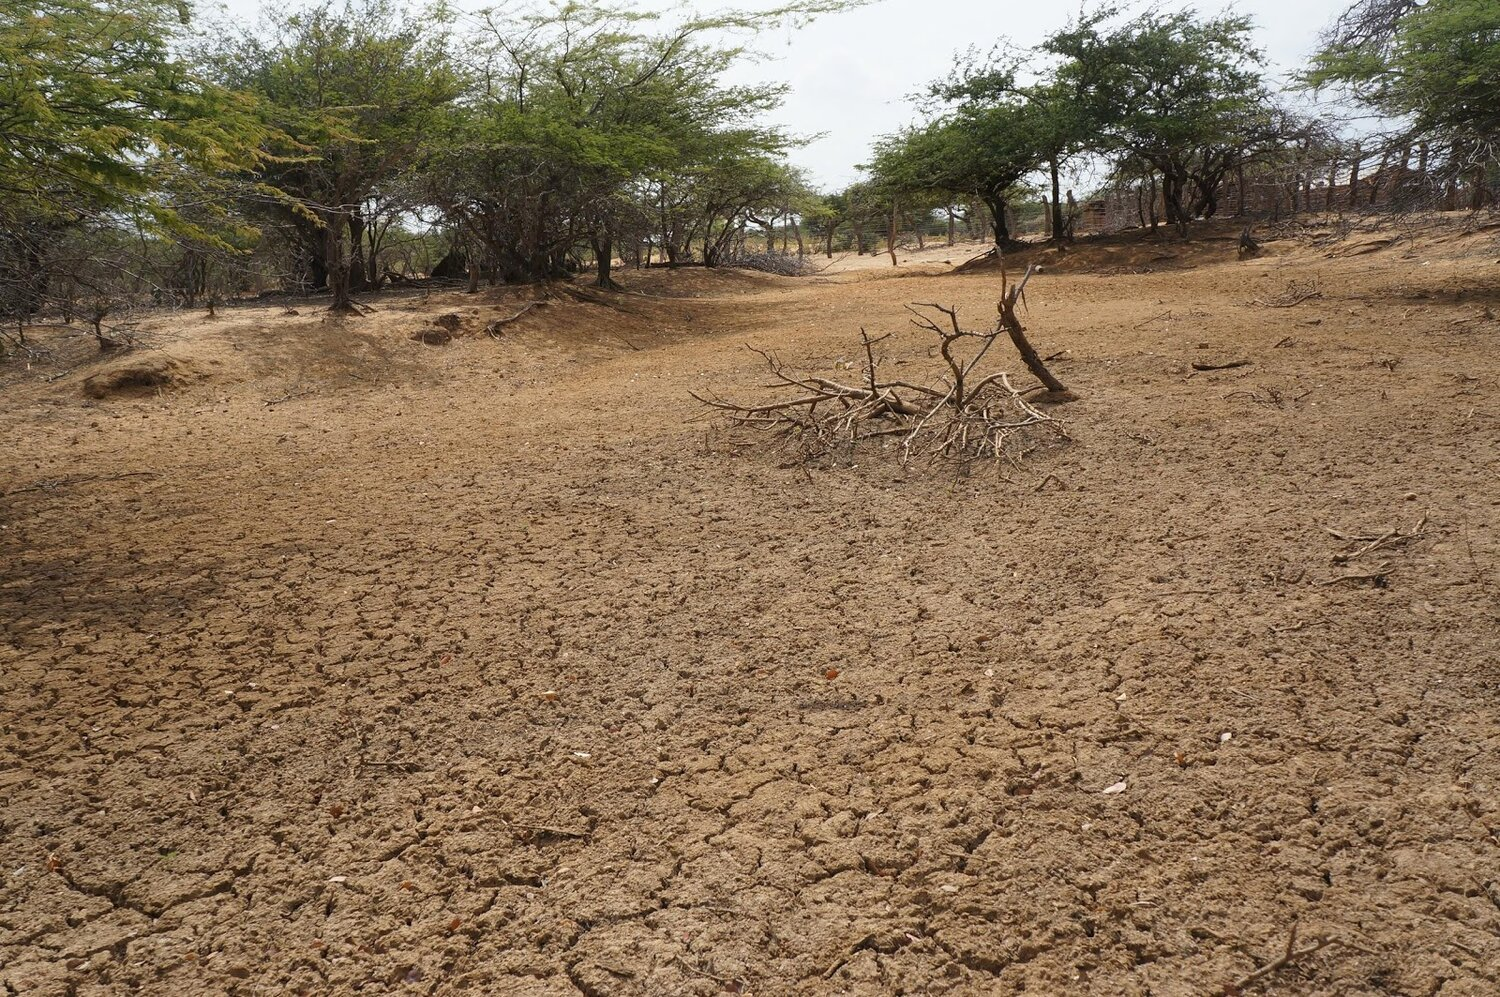 """A dried up """"Jaguey"""" caused by a prolonged drought. La Guajira, Colomba. Photo by V.Circe."""